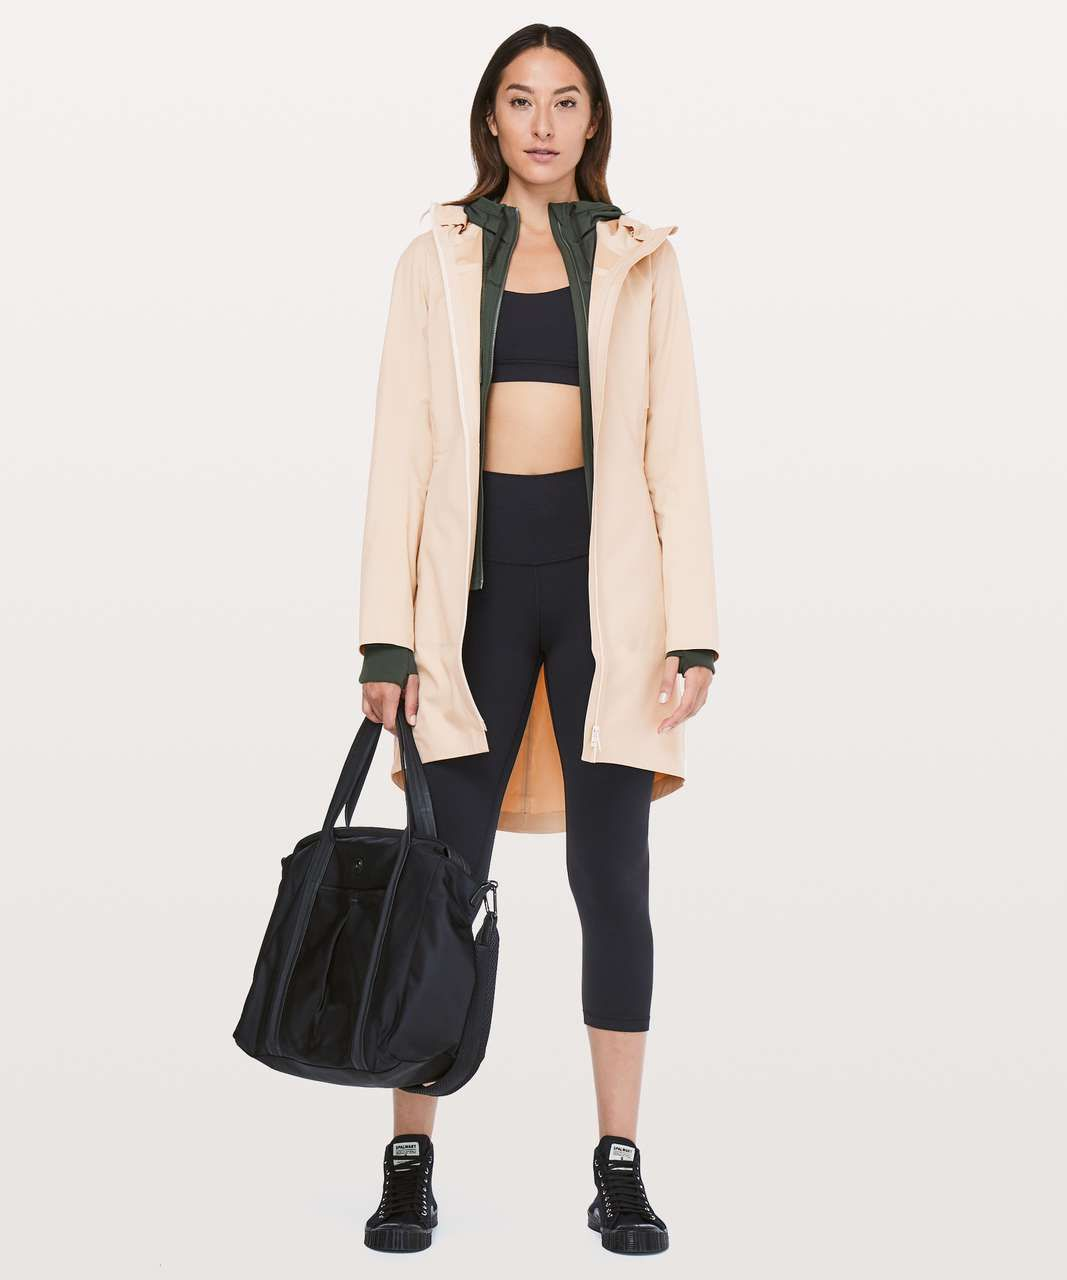 ba806c16c905f Lululemon Rain Rules Jacket - Locarno in 2019 | Lulu Wants | Jackets ...